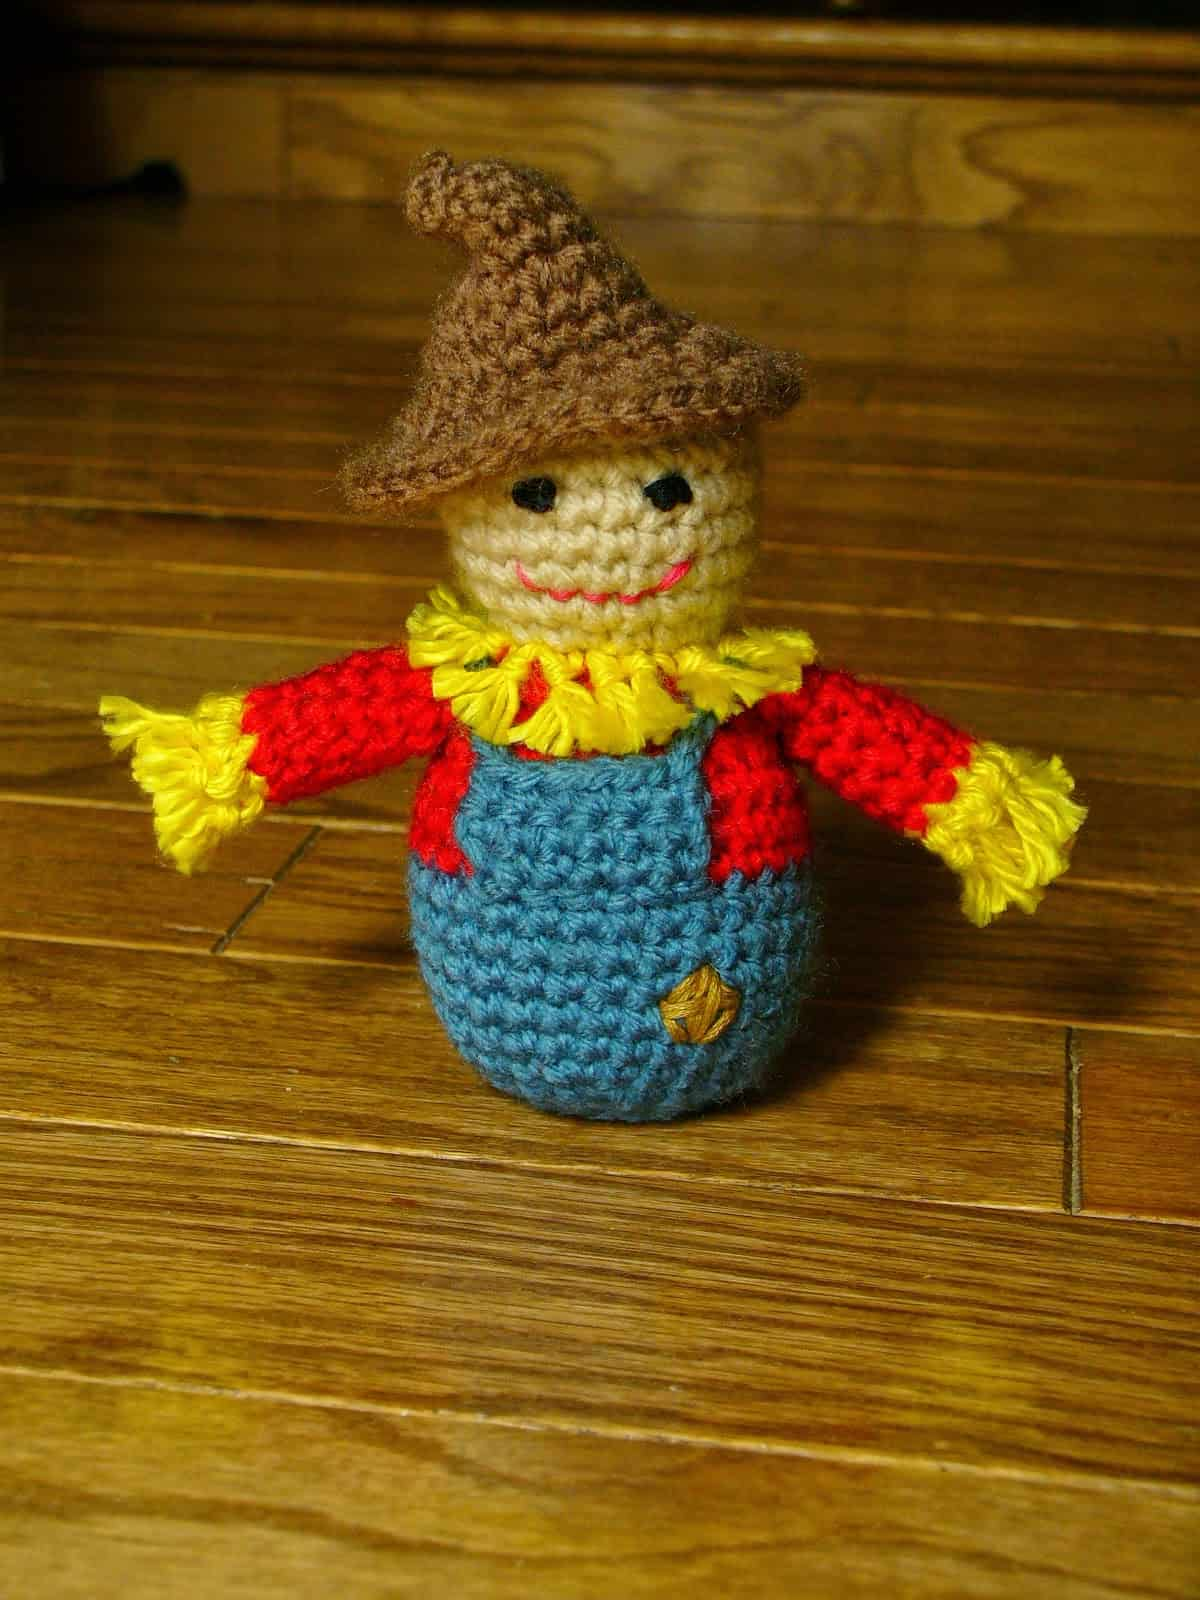 Little crocheted scarecrow